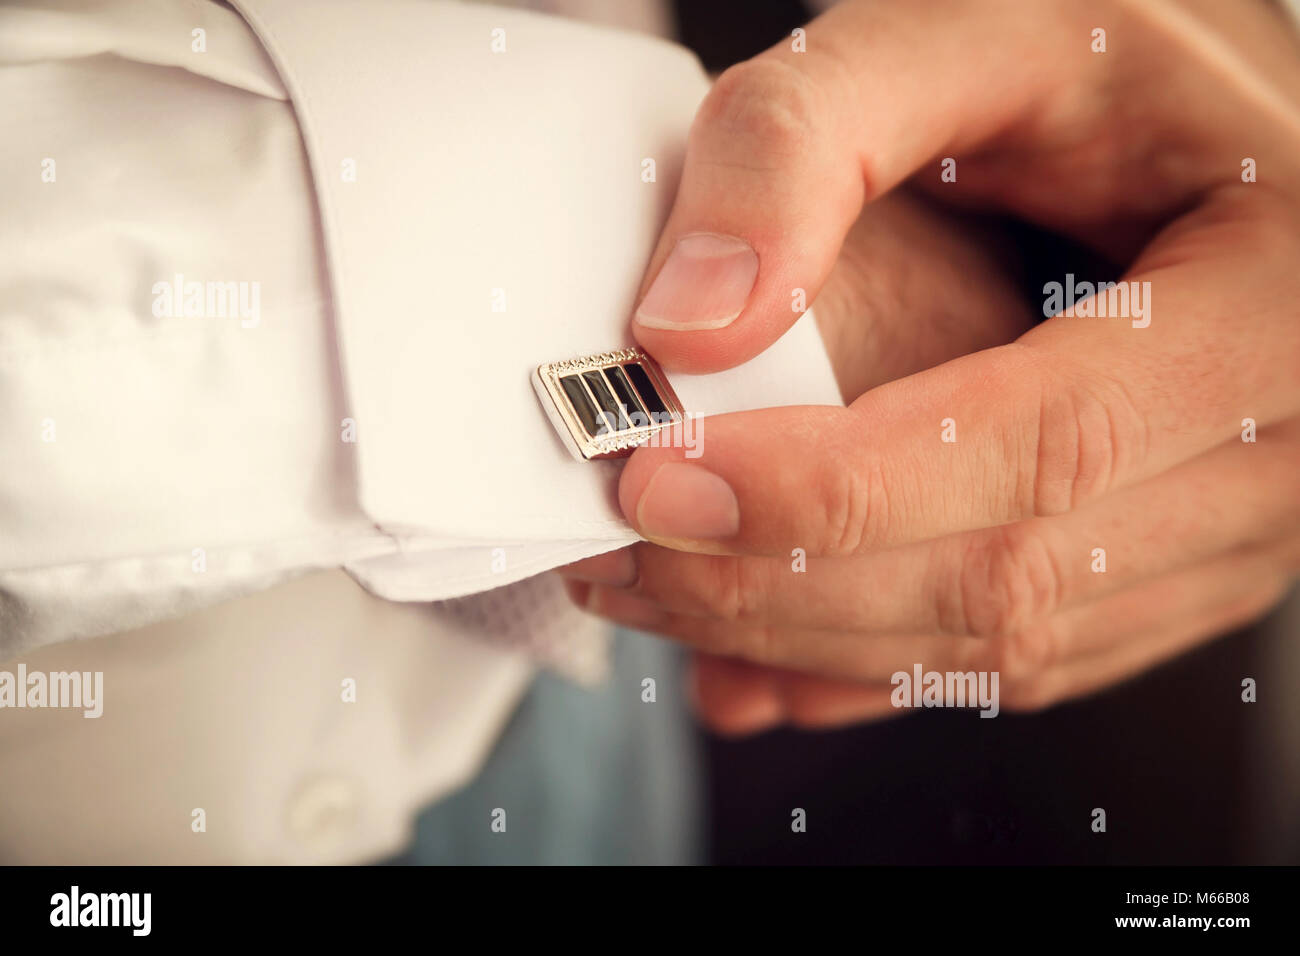 groom putting on cuff-links as he gets dressed in formal wear close up - Stock Image